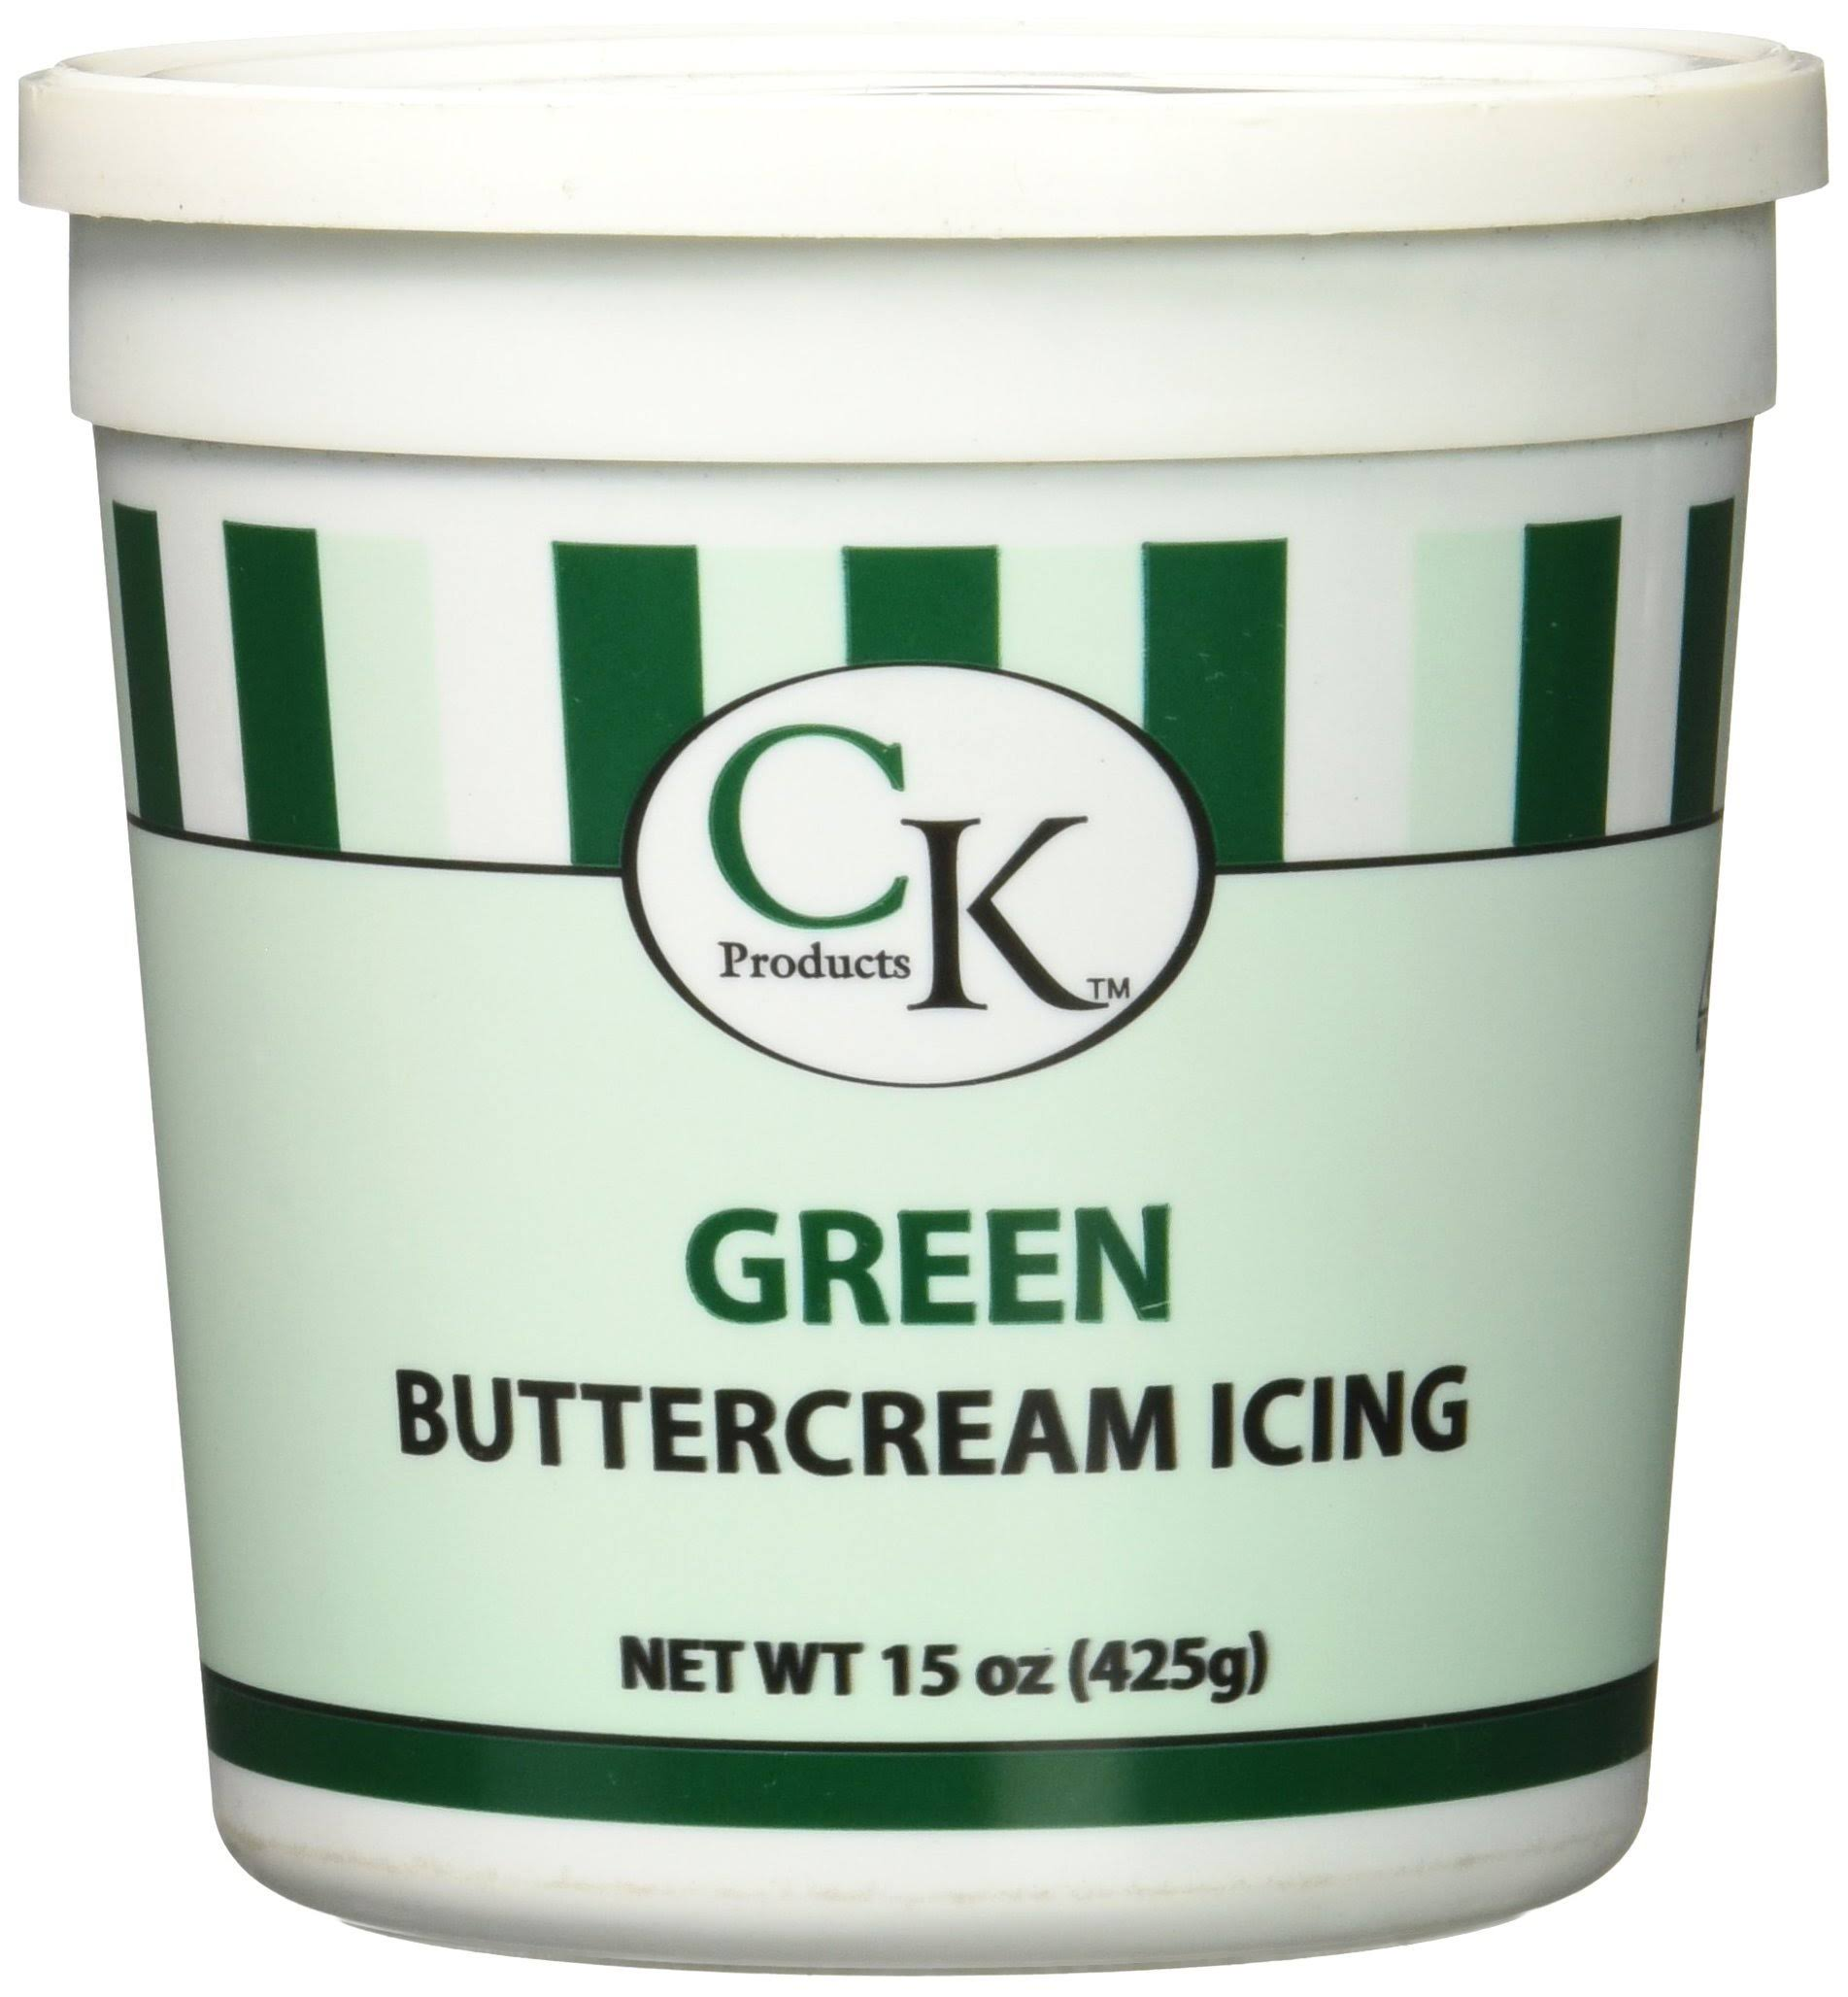 CK Products Buttercream Icing Cake Topper - Green, 15oz